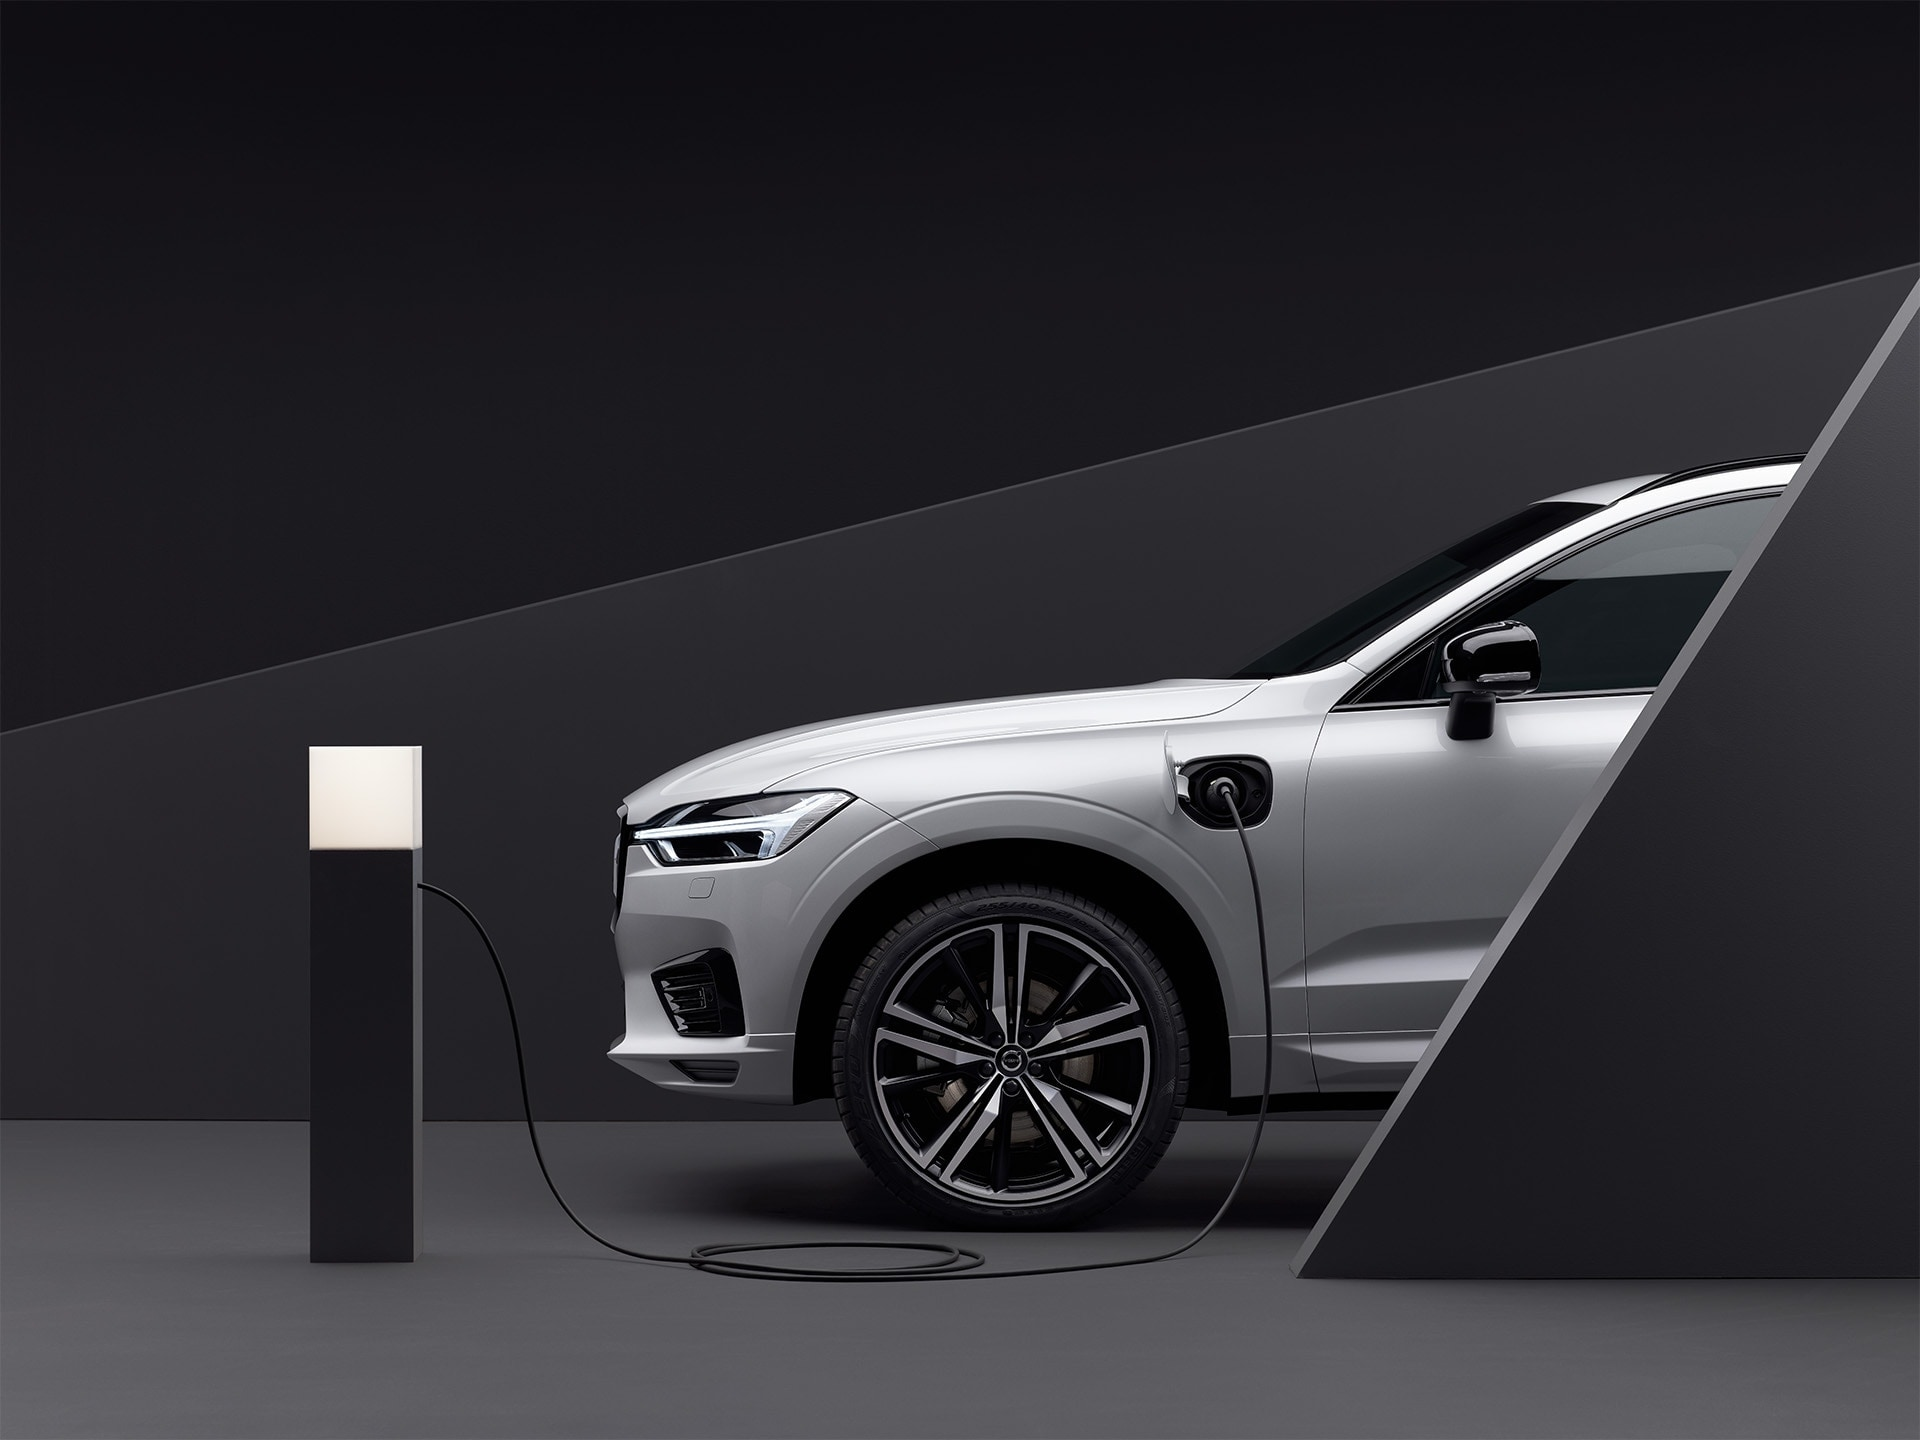 A parked luminous silver Volvo SUV is plugged into a charging point